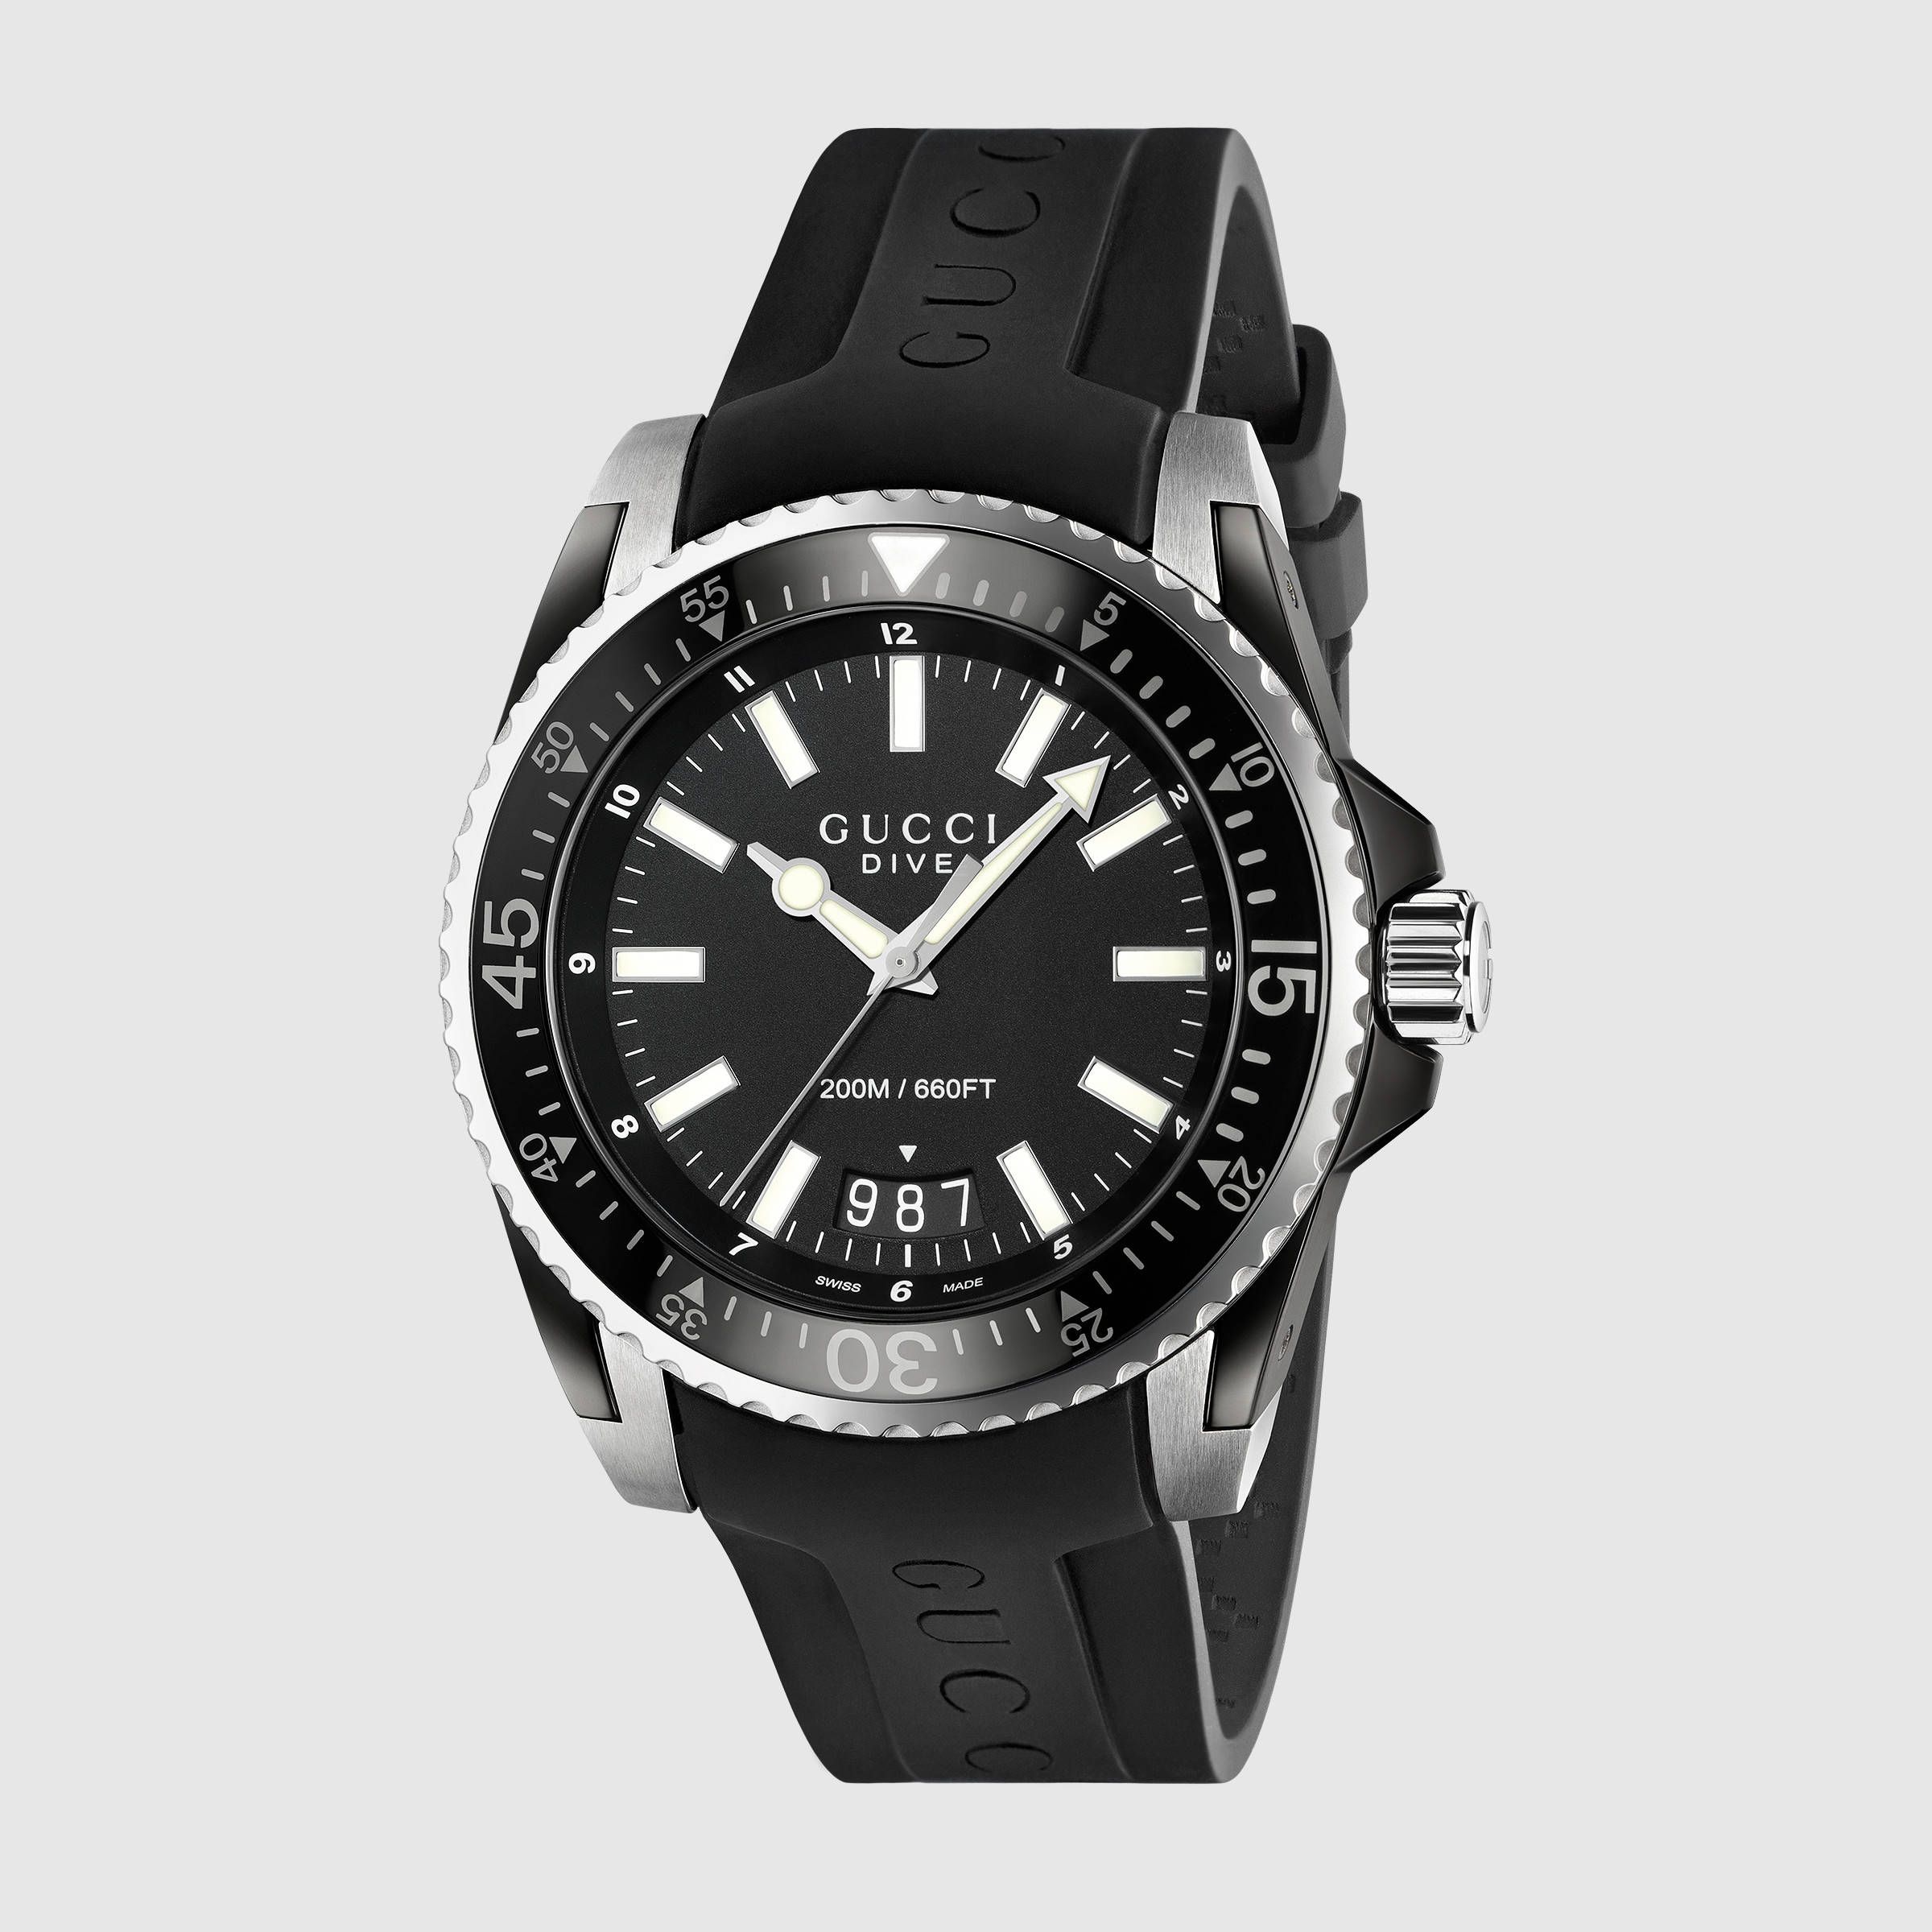 Replica GUCCI Dive Watch Releases